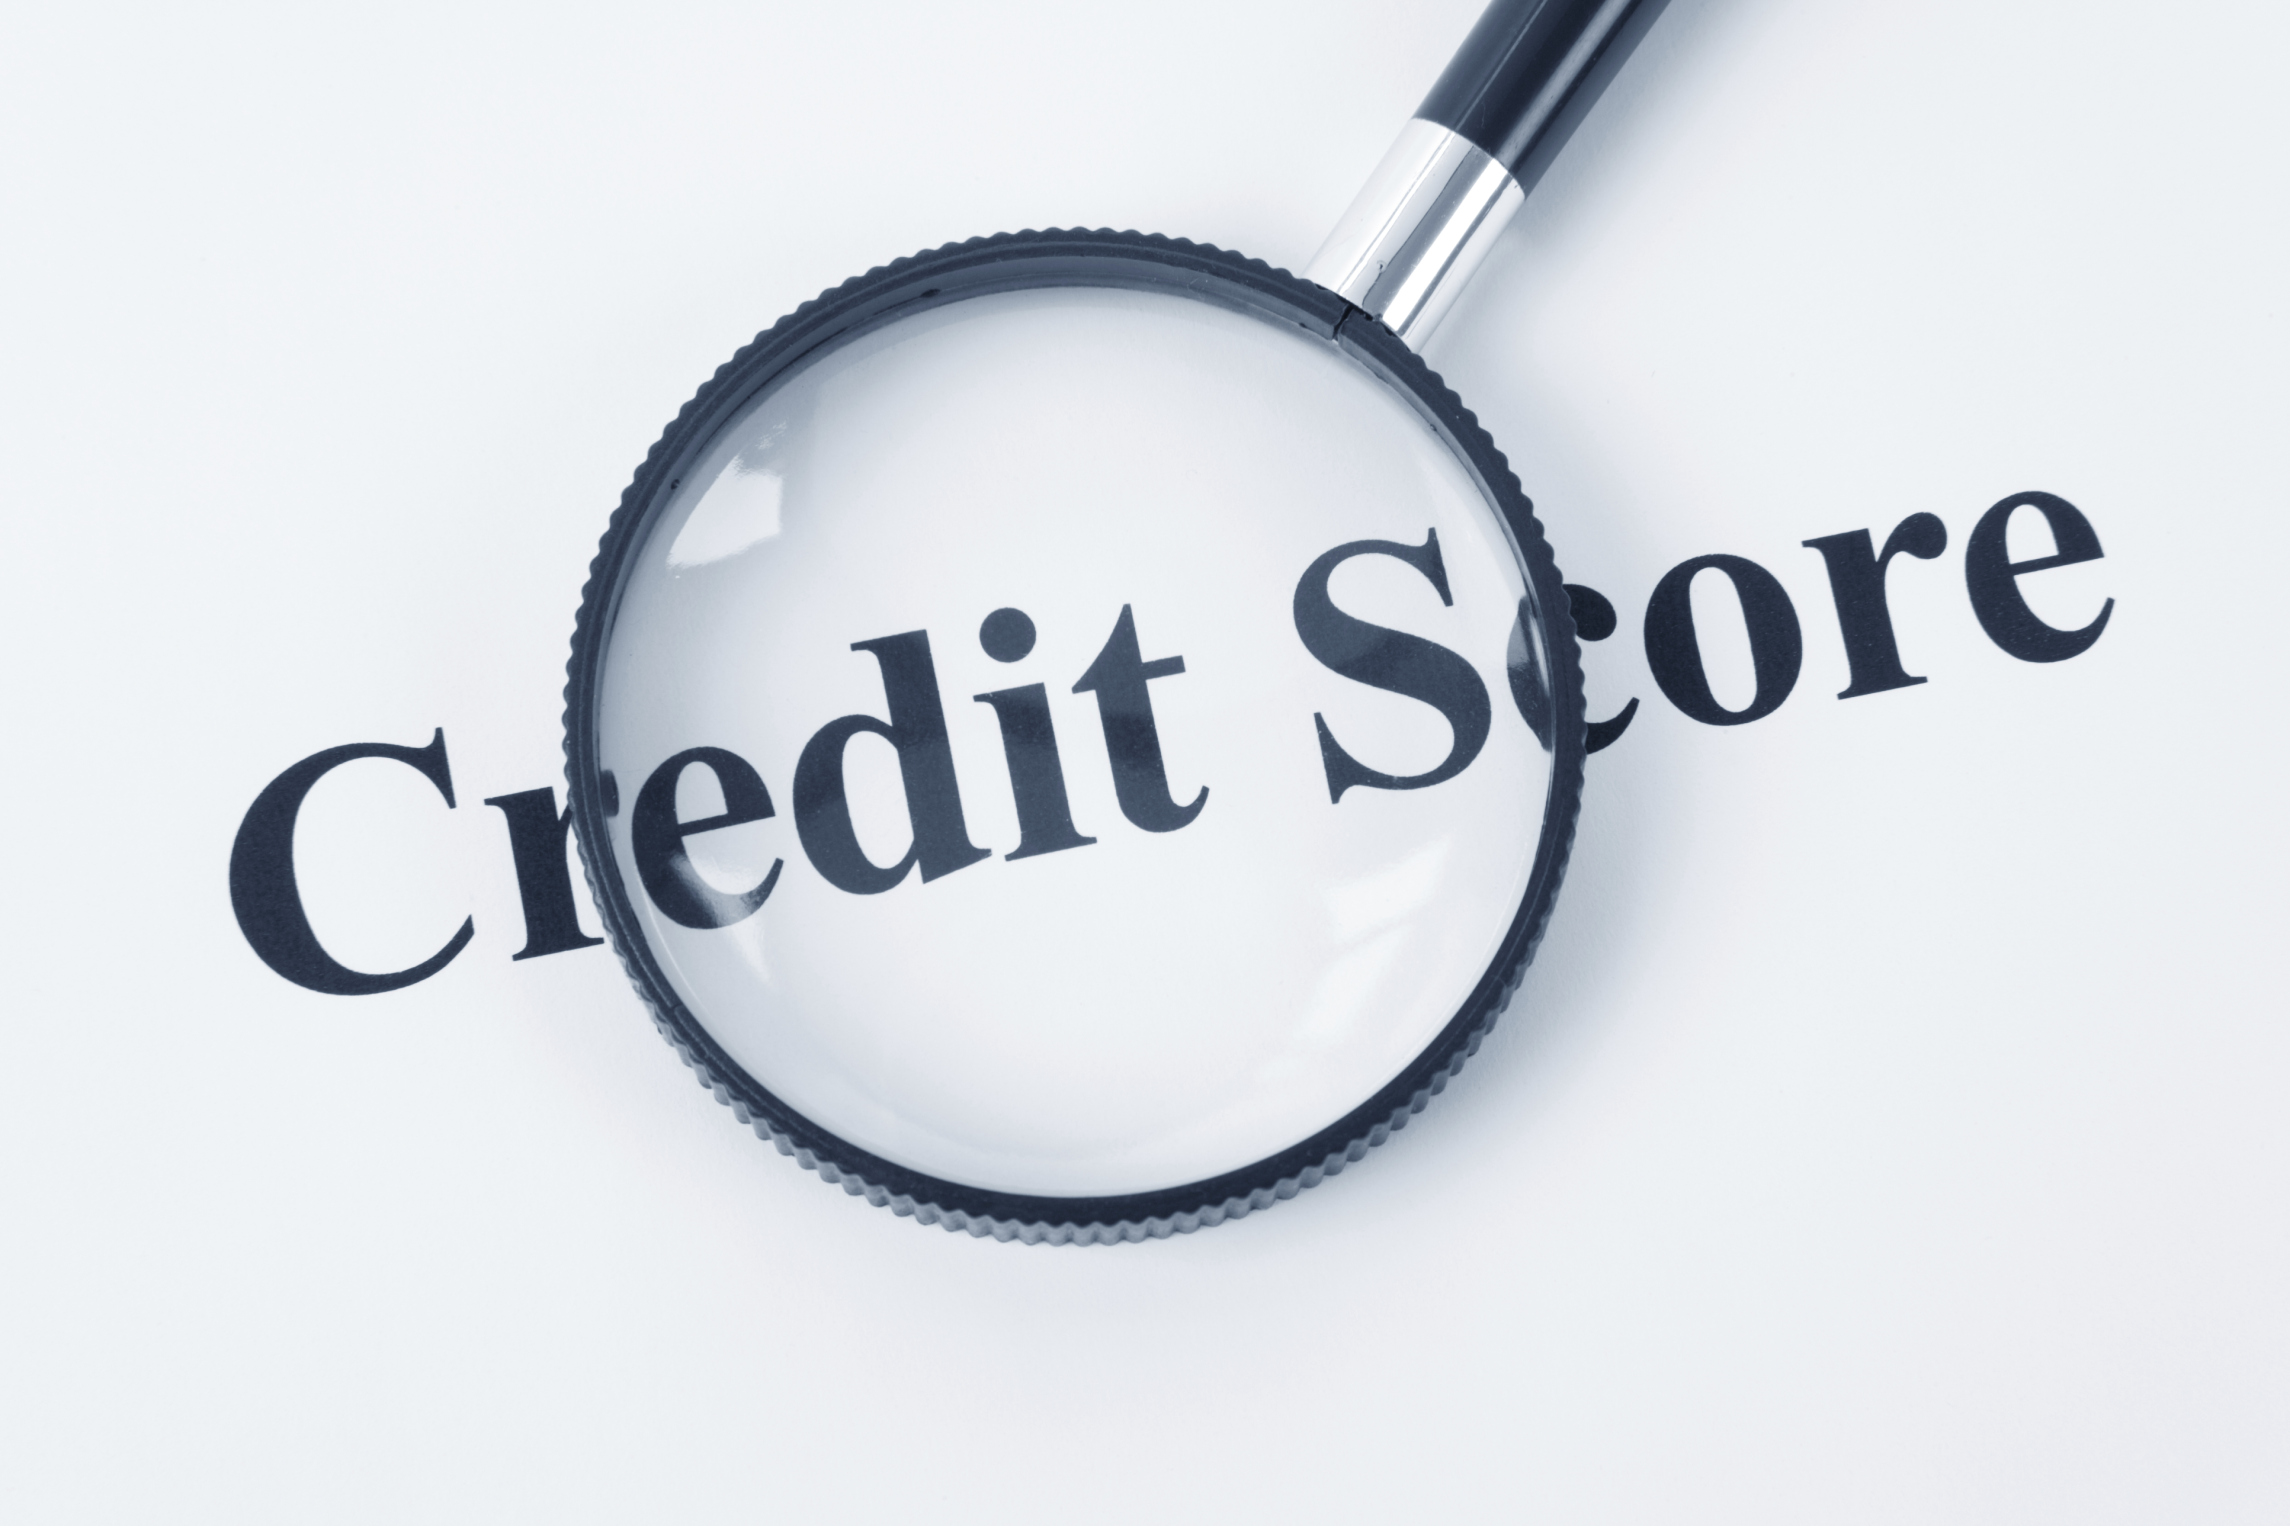 It pays to look into your Credit Score